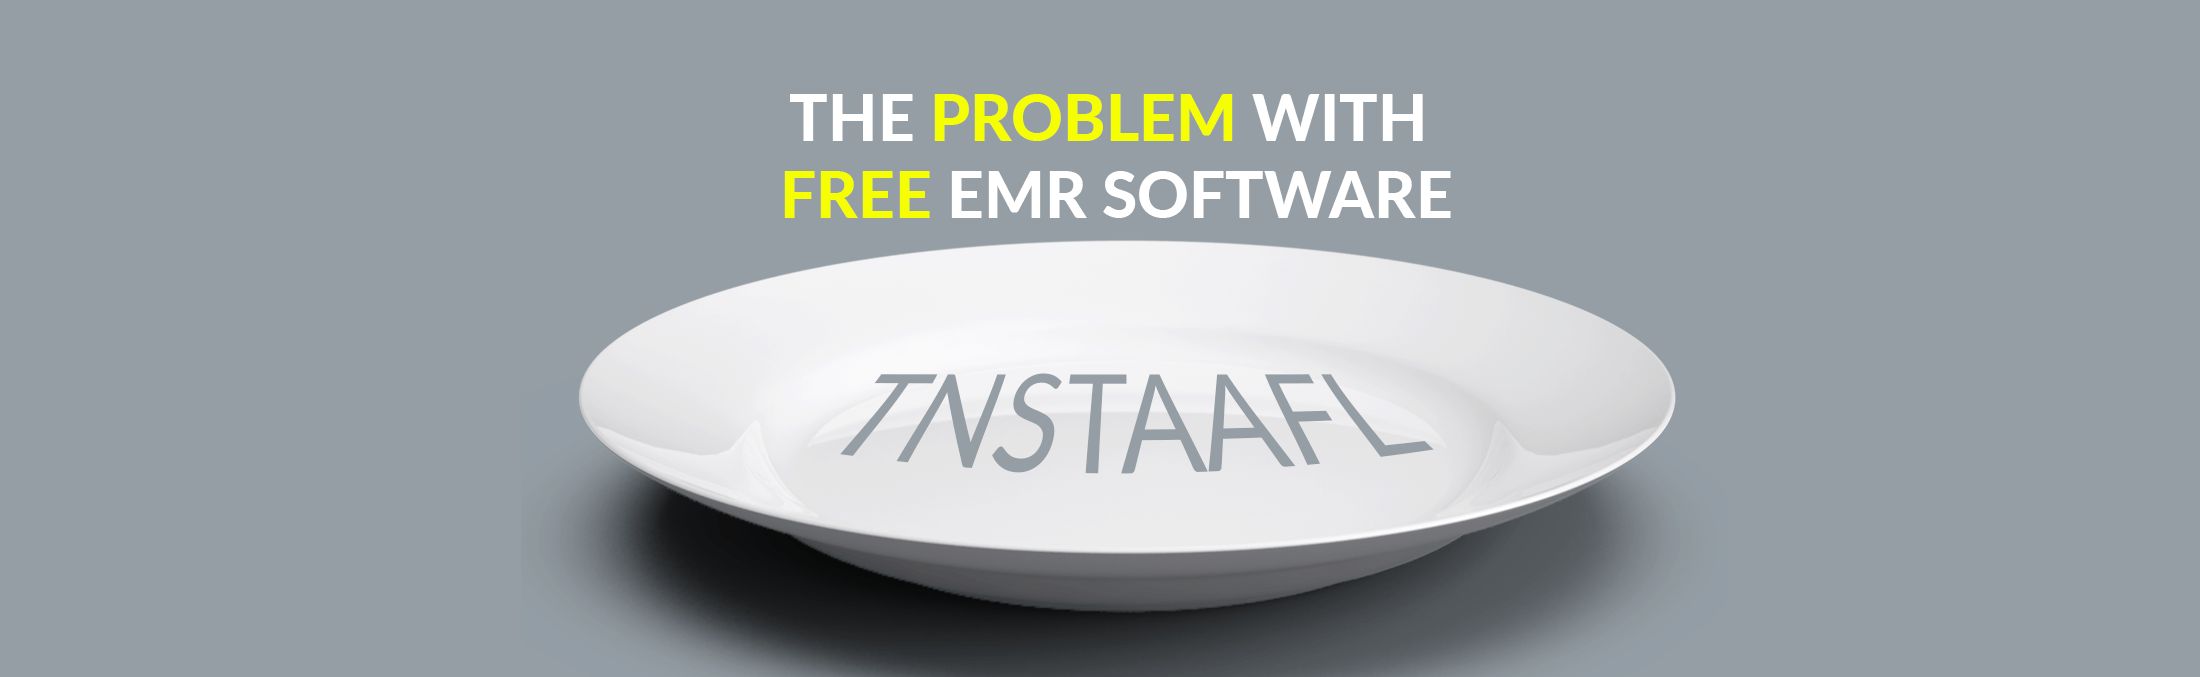 The problem with free emr software